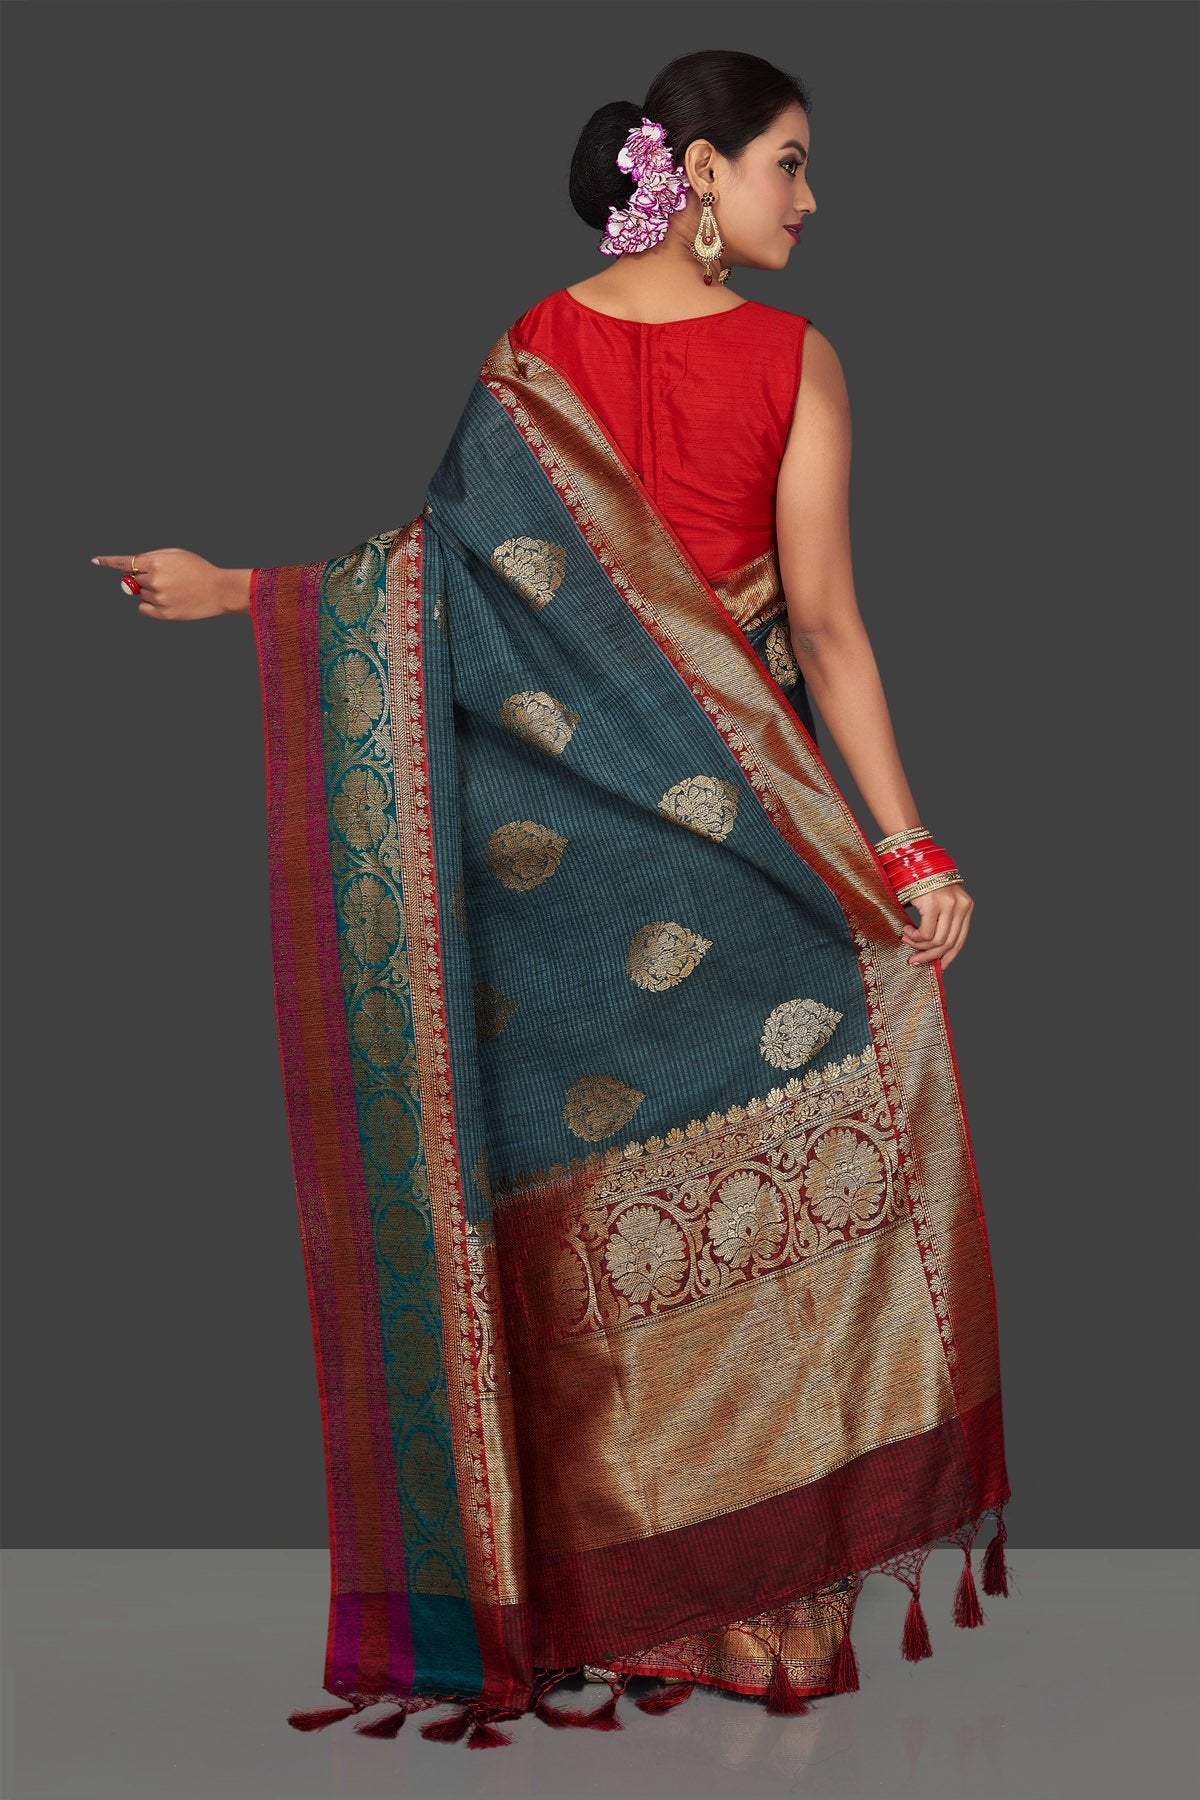 Buy beautiful steel blue striped tassar Banarasi sari online in USA with antique zari border. Garner compliments on weddings and special occasions with exquisite Banarasi sarees, handwoven silk sarees, tussar sarees from Pure Elegance Indian fashion store in USA.-back